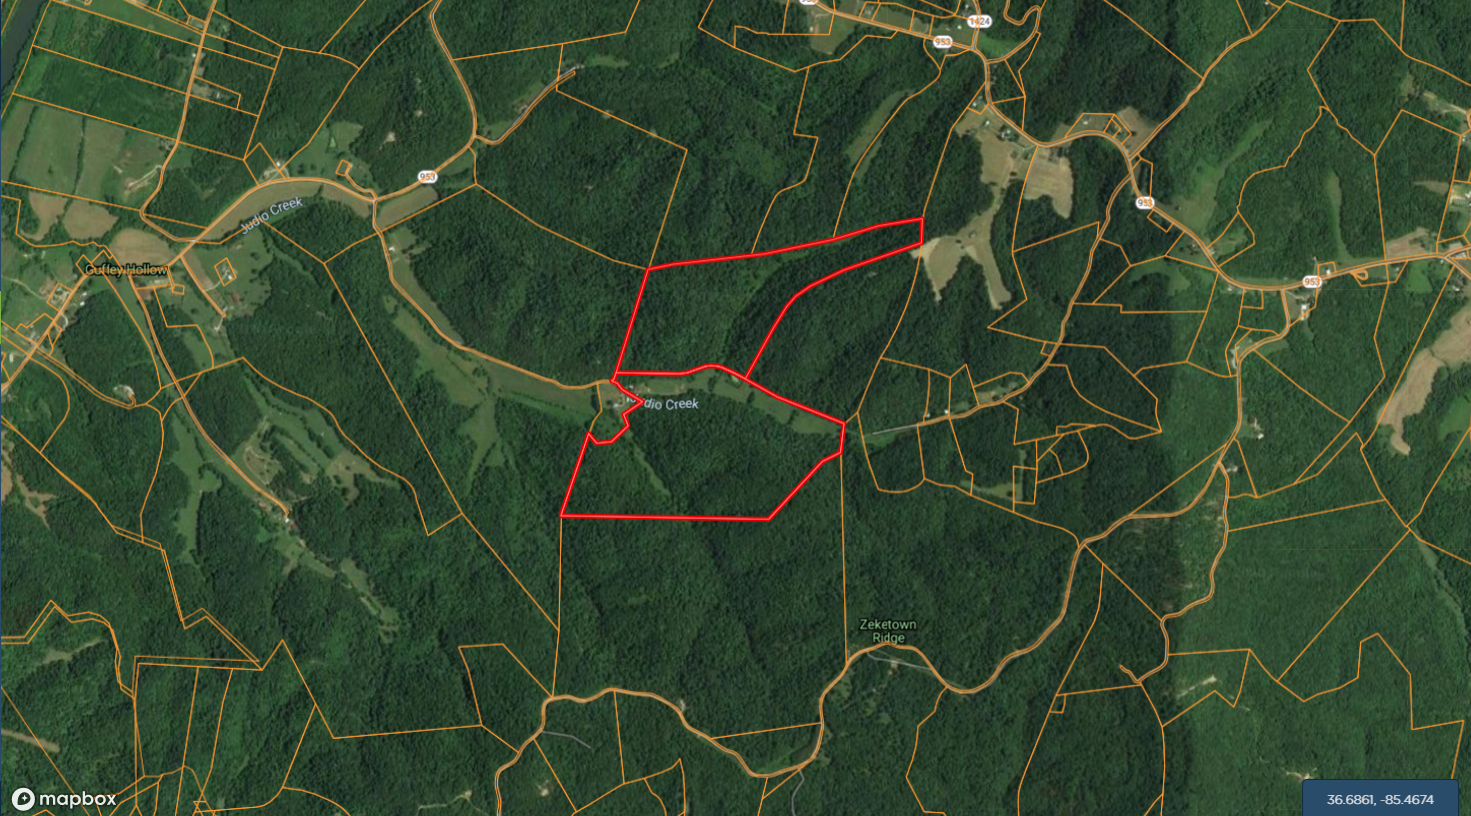 Land/Farm for sale, Burkesville, Kentucky